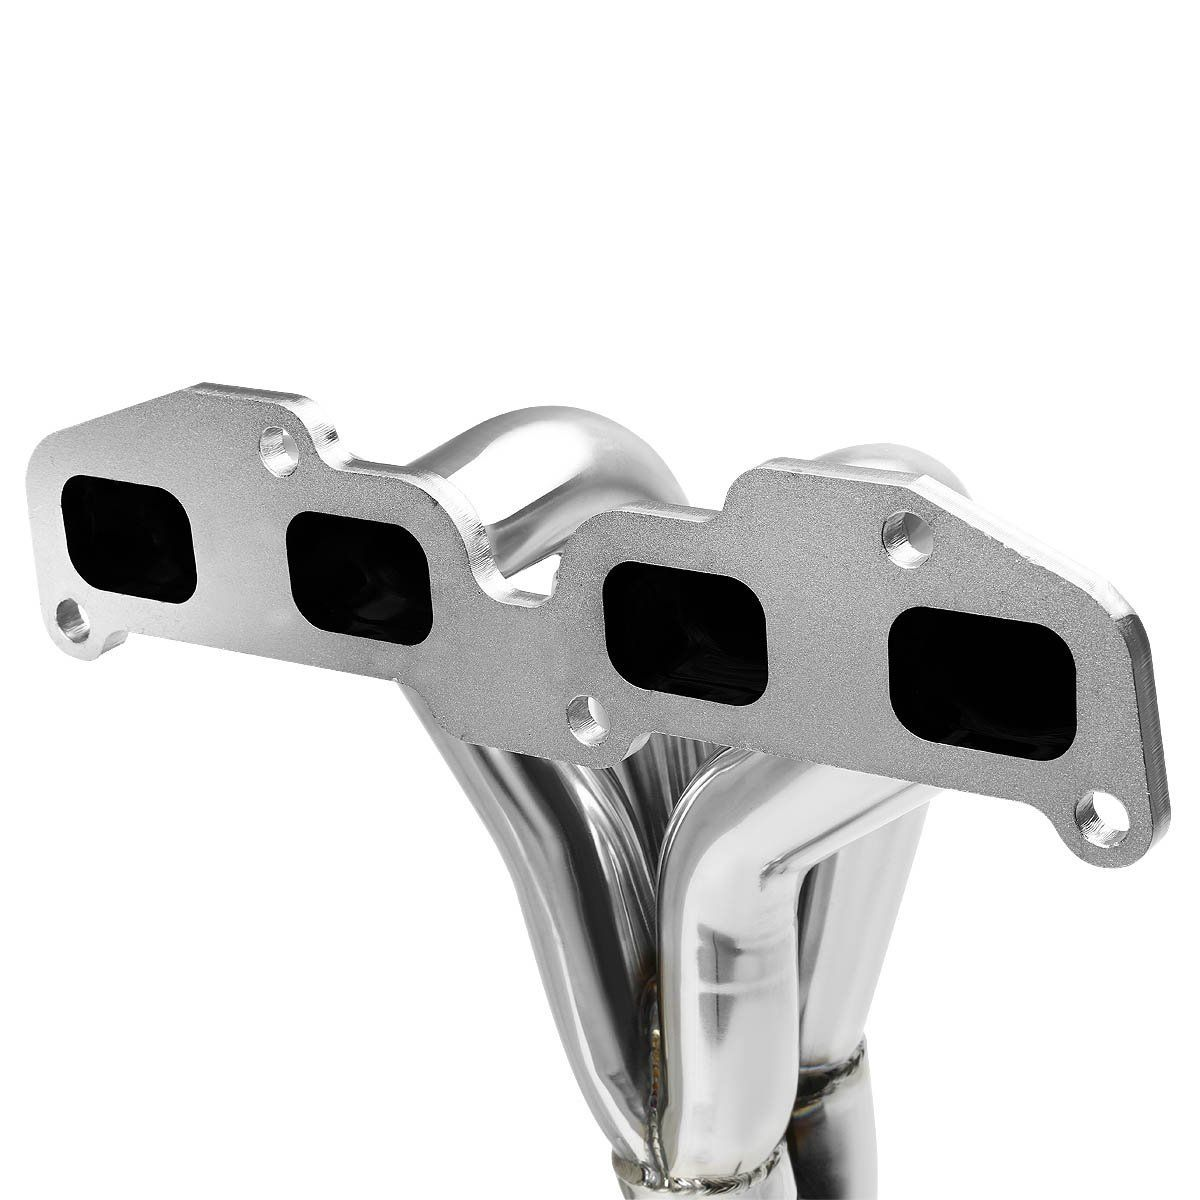 Headers CCIYU 4-1 Stainless Header Exhaust Manifold Fits for ...